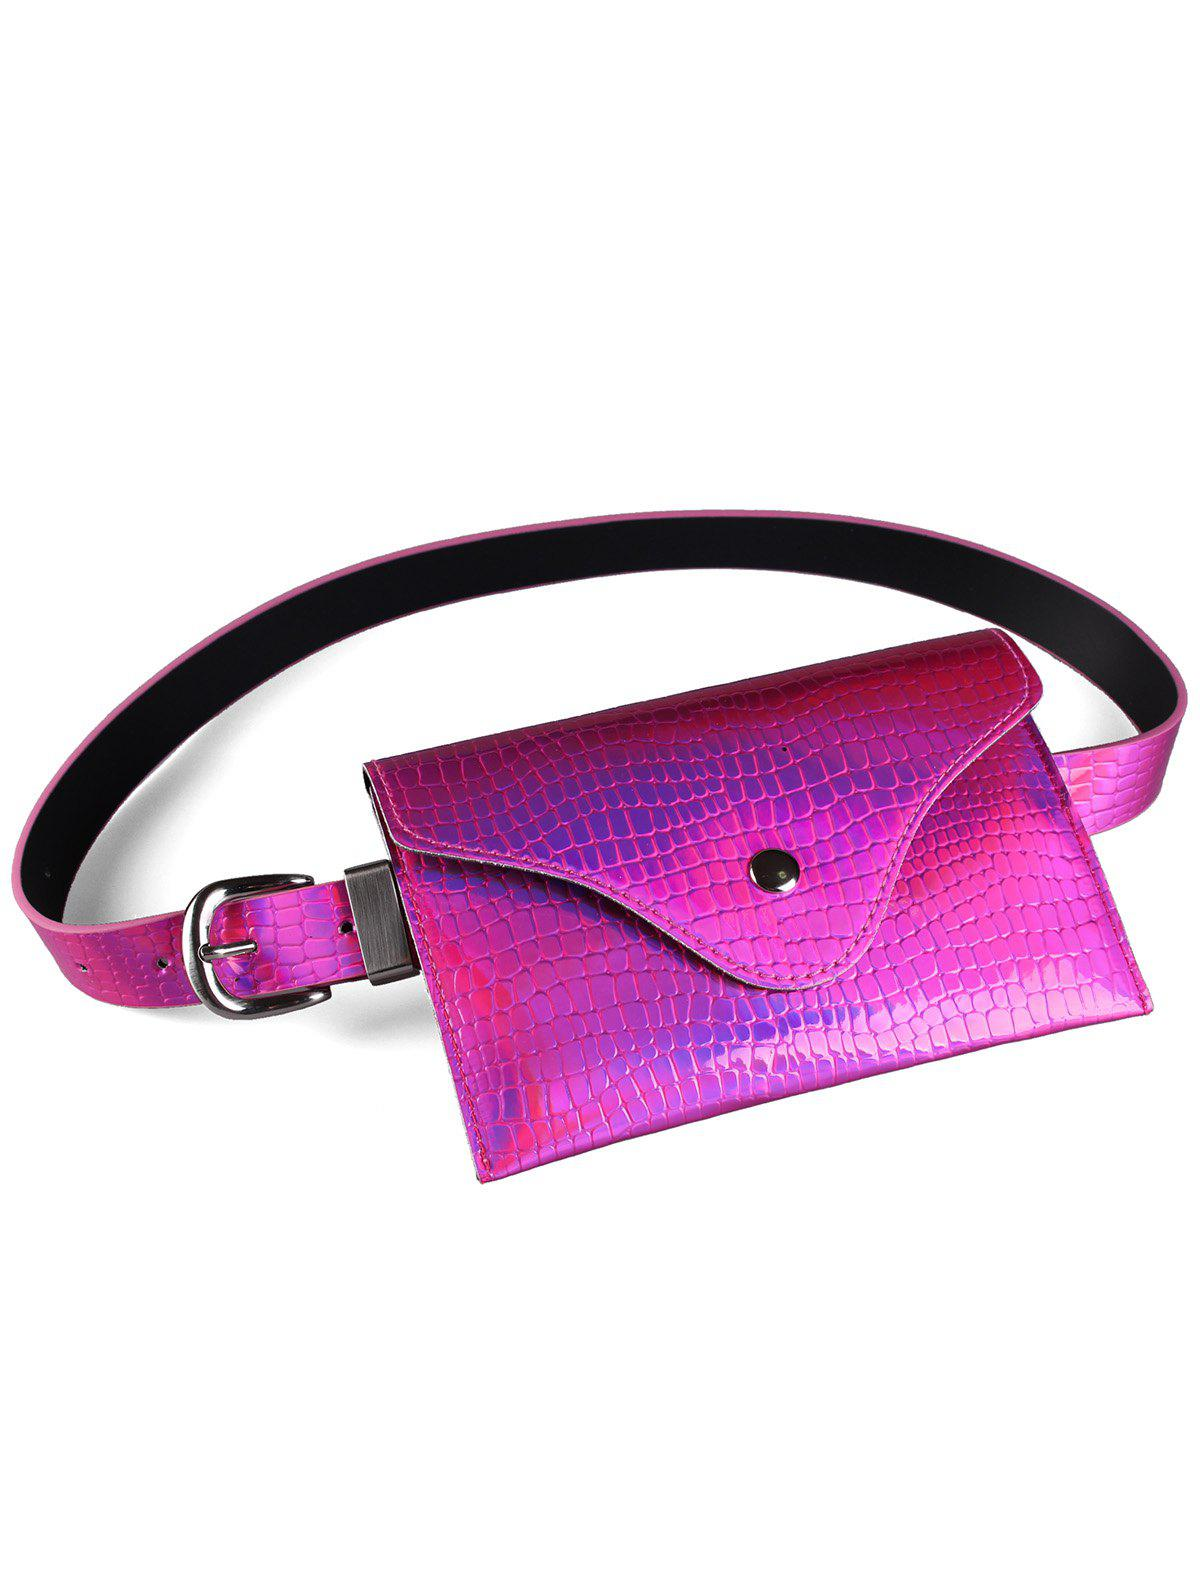 Buy Fanny Pack Decorative Glossy Belt Bag